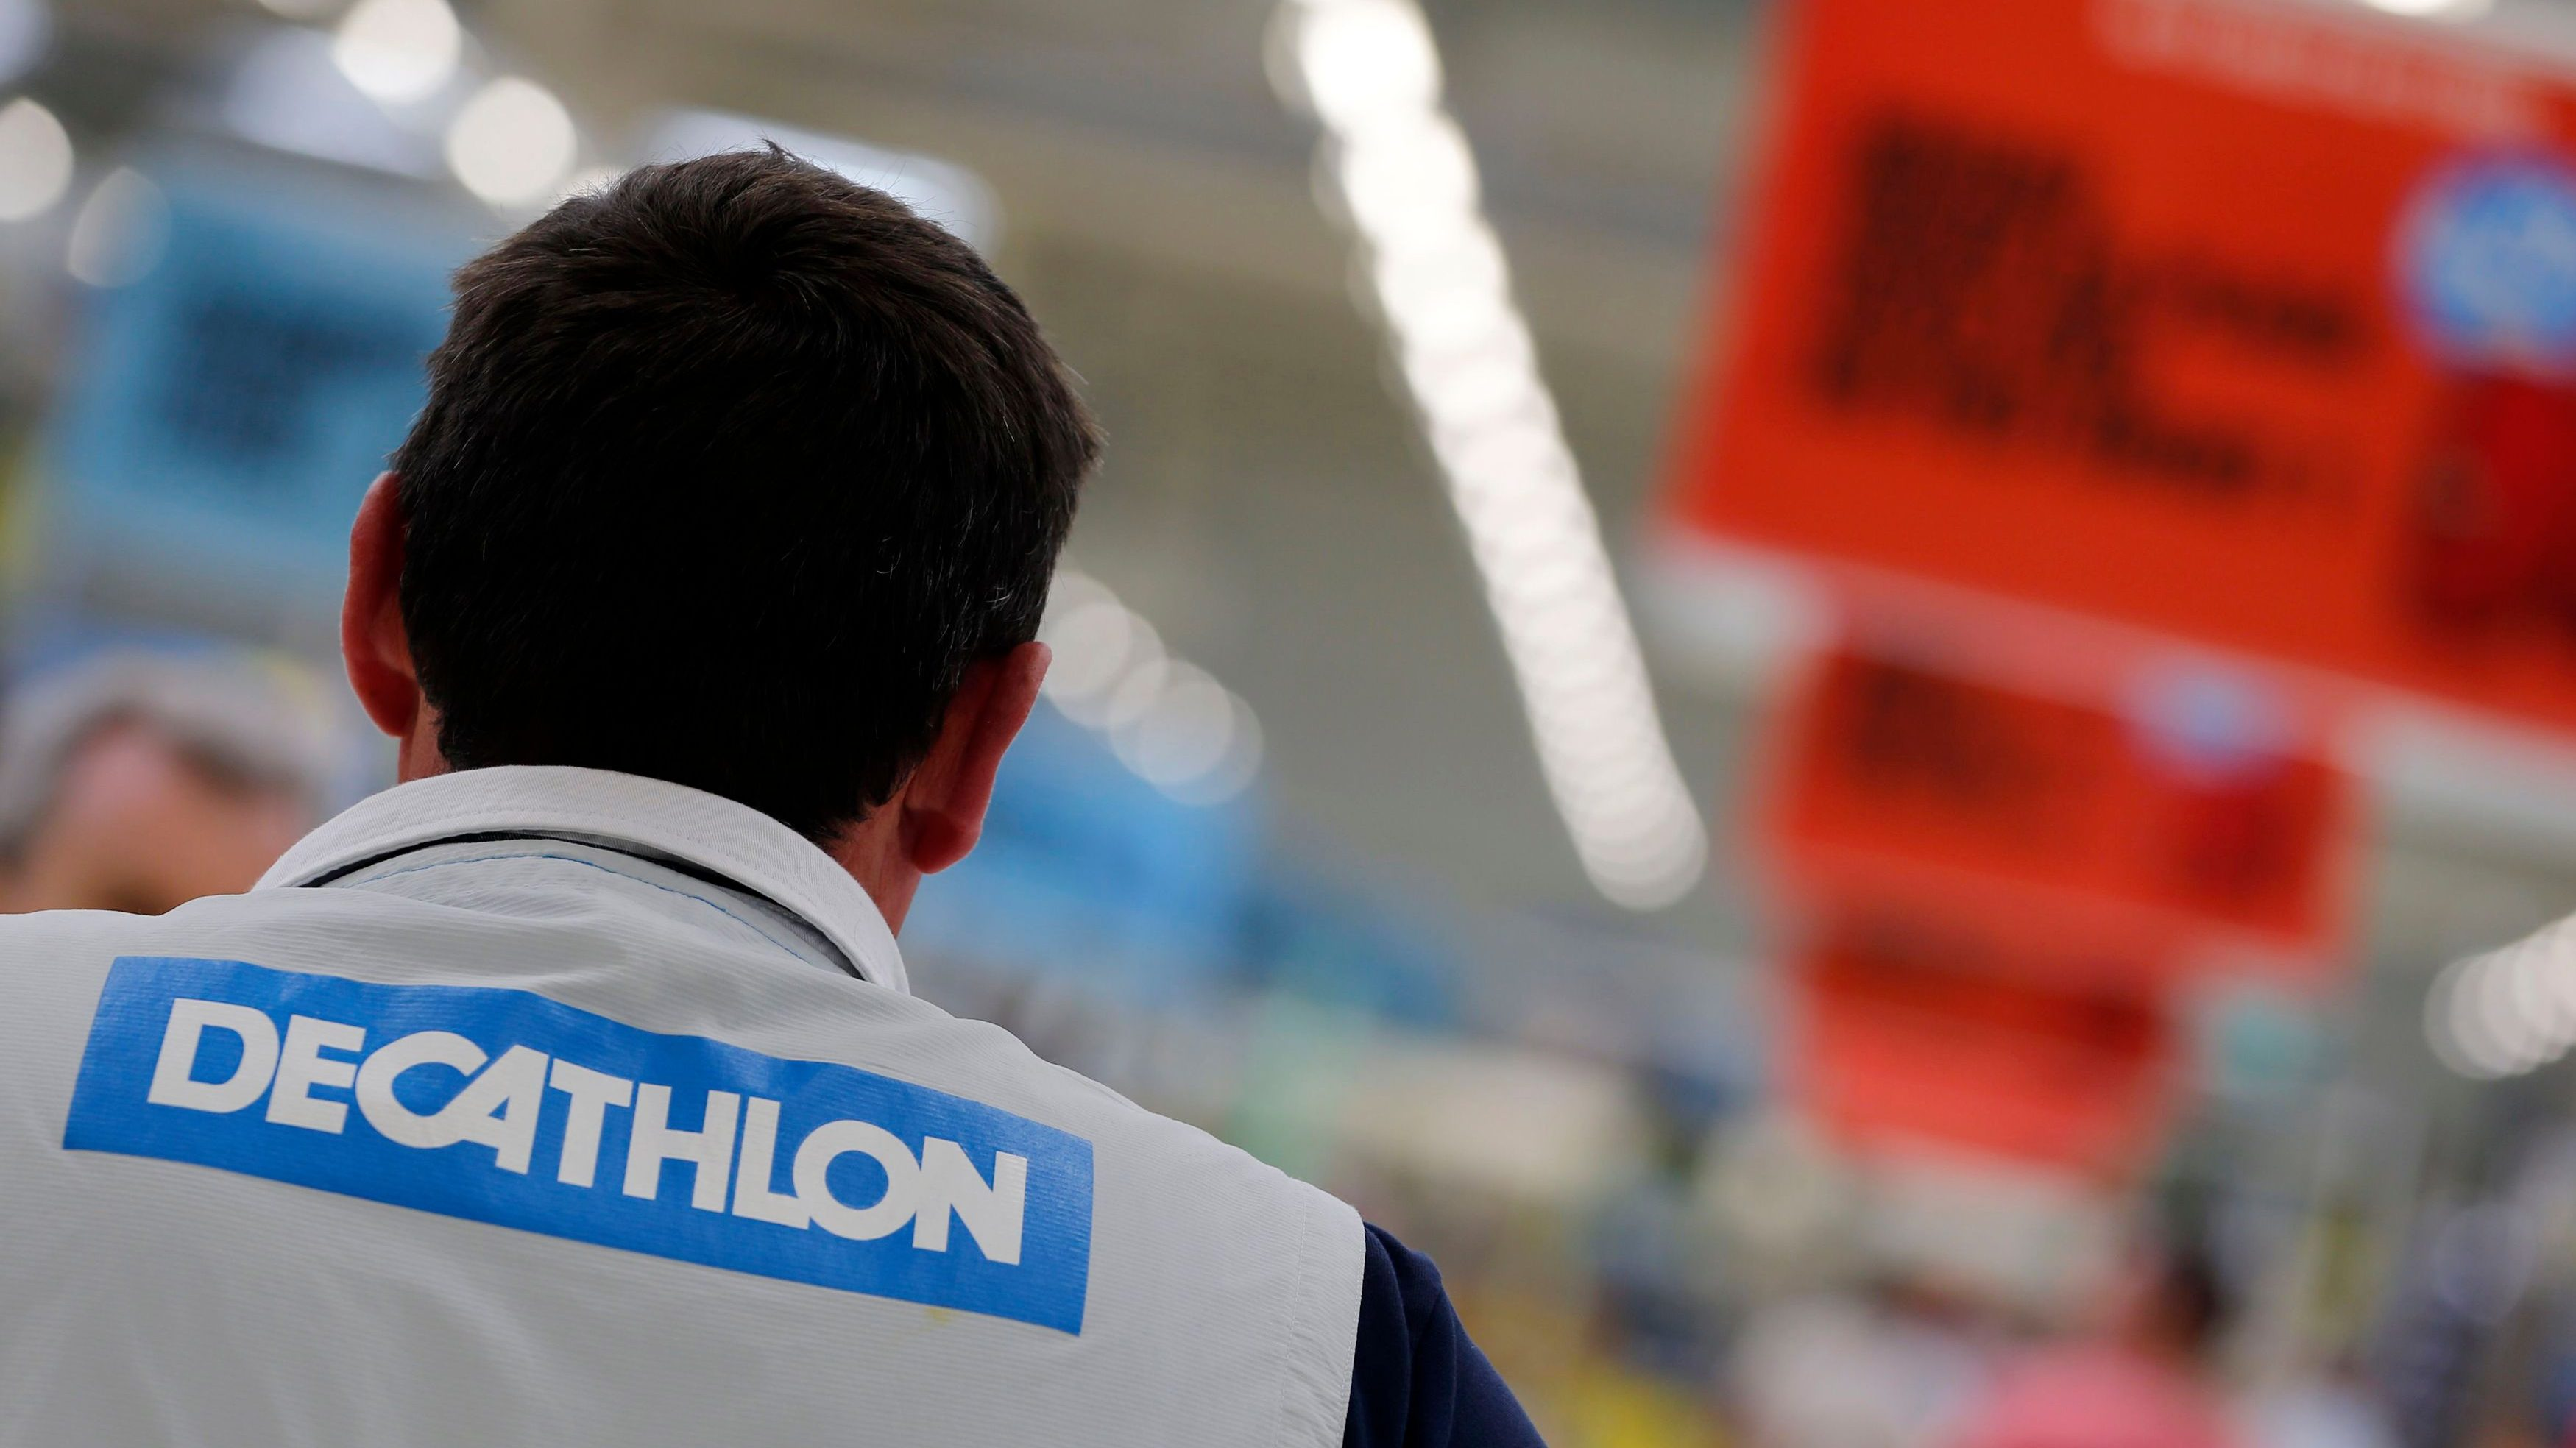 An employee works at the French sports equipment and sportswear company Decathlon store in Merignac near Bordeaux July 10, 2014. The group, number one in French distribution of sports equipment, with 730 stores worldwide, of which 262 are in France, focuses on the variety of its in-house brands to accelerate its growth and its expansion plans. Picture taken July 10, 2014. REUTERS/Regis Duvignau (FRANCE - Tags: BUSINESS) - PM1EA7B0S7T01